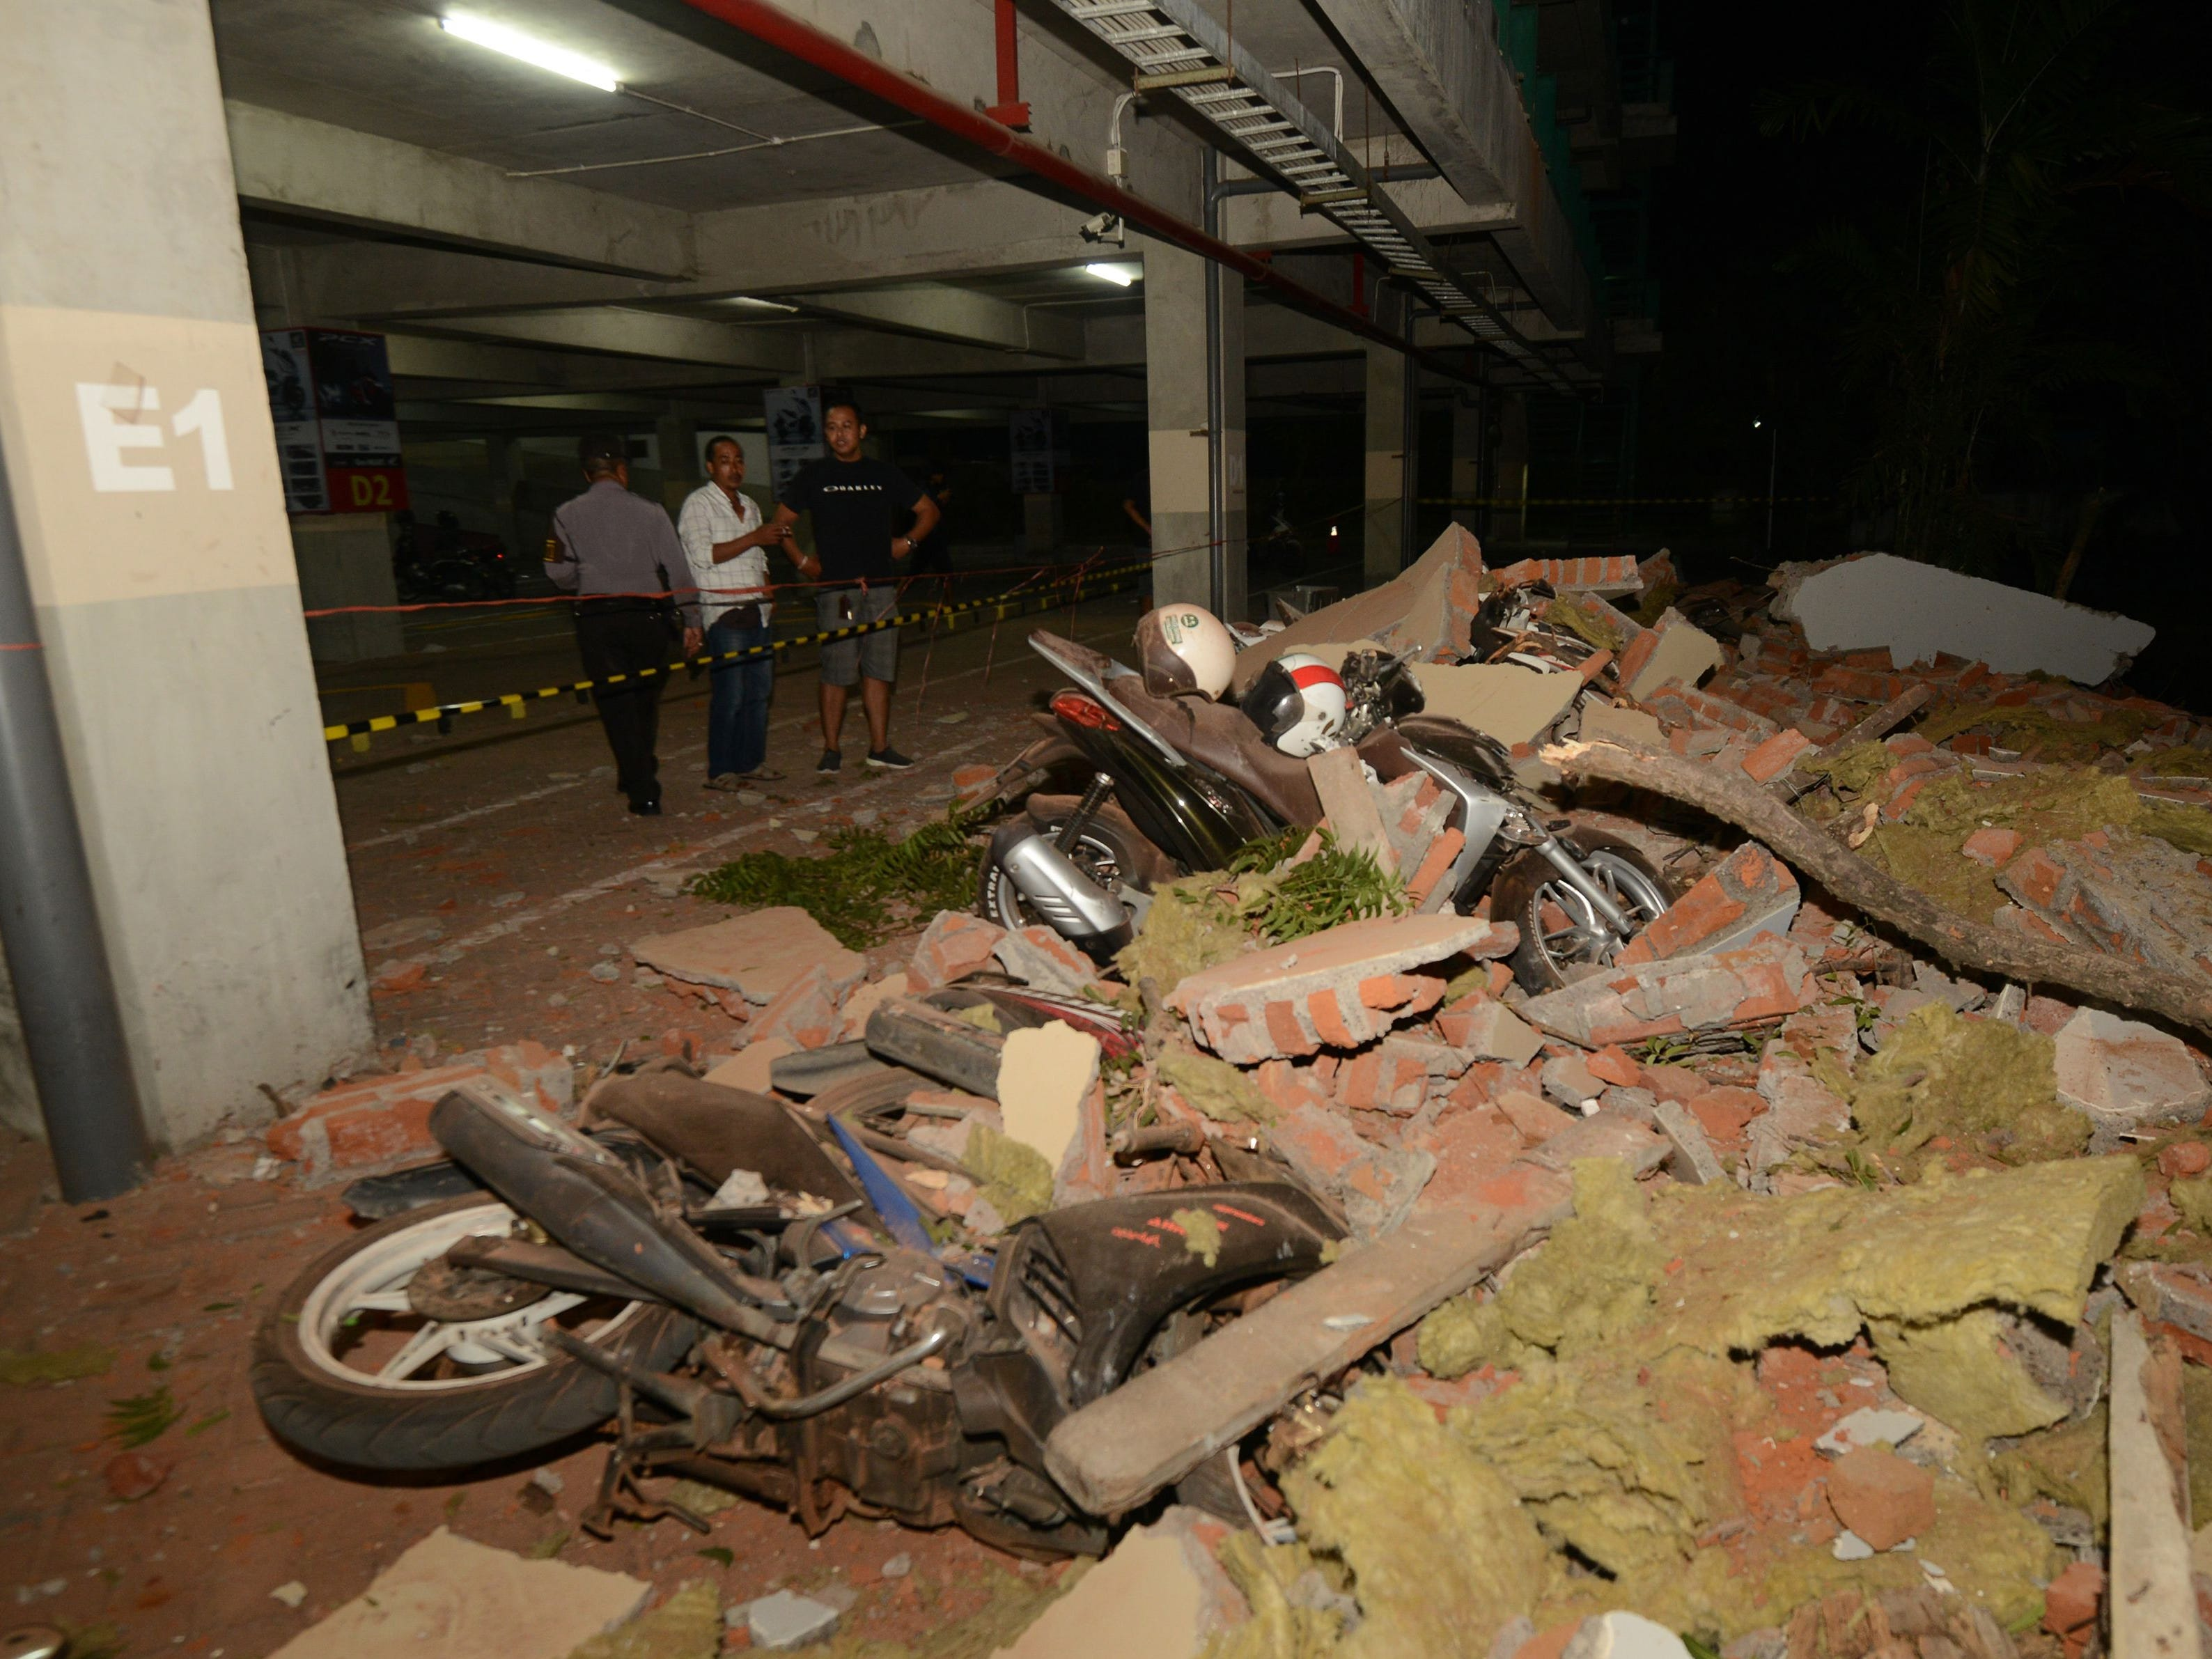 Residents look at bikes and debris at a mall in Bali's capital Denpasar on August 5, 2018 after a major earthquake rocked neighboring Lombok island.